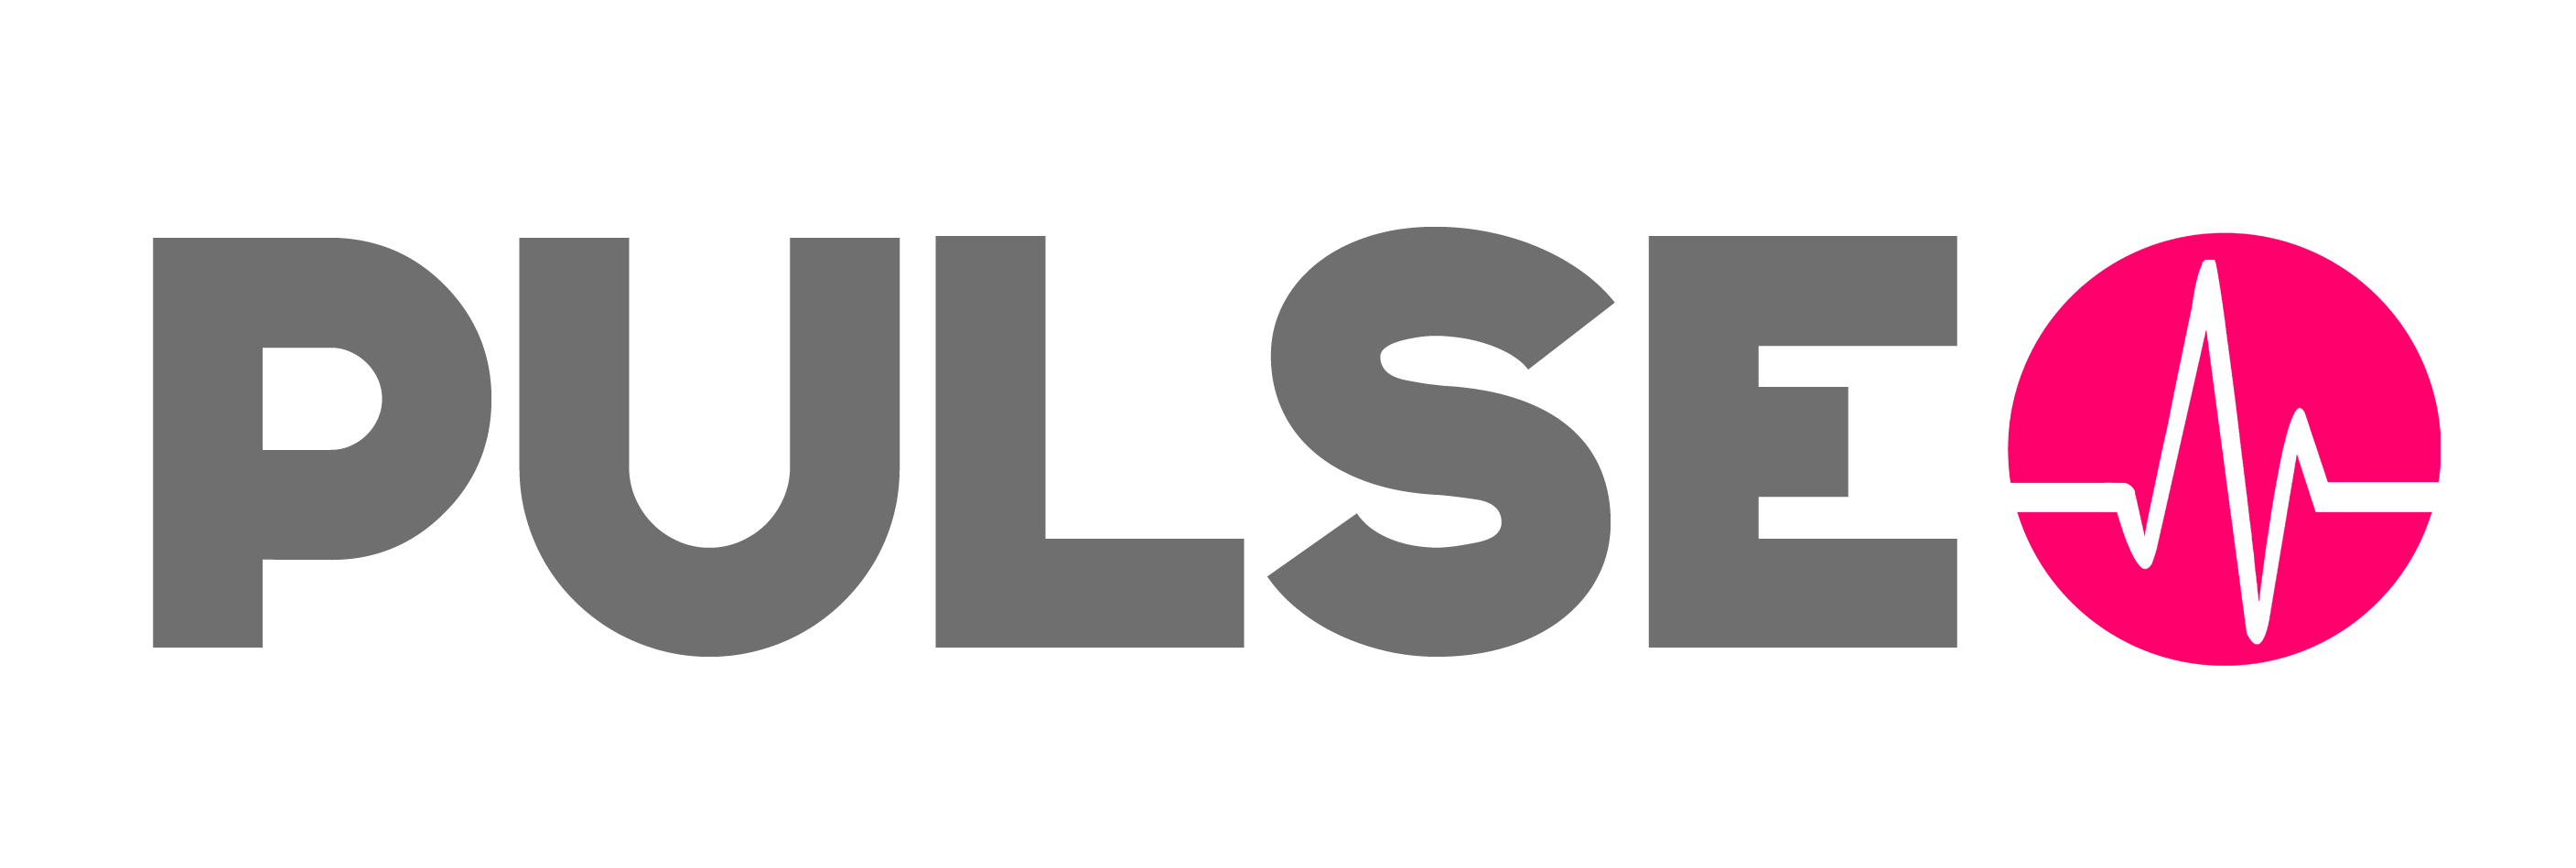 pulse_logo_wtb